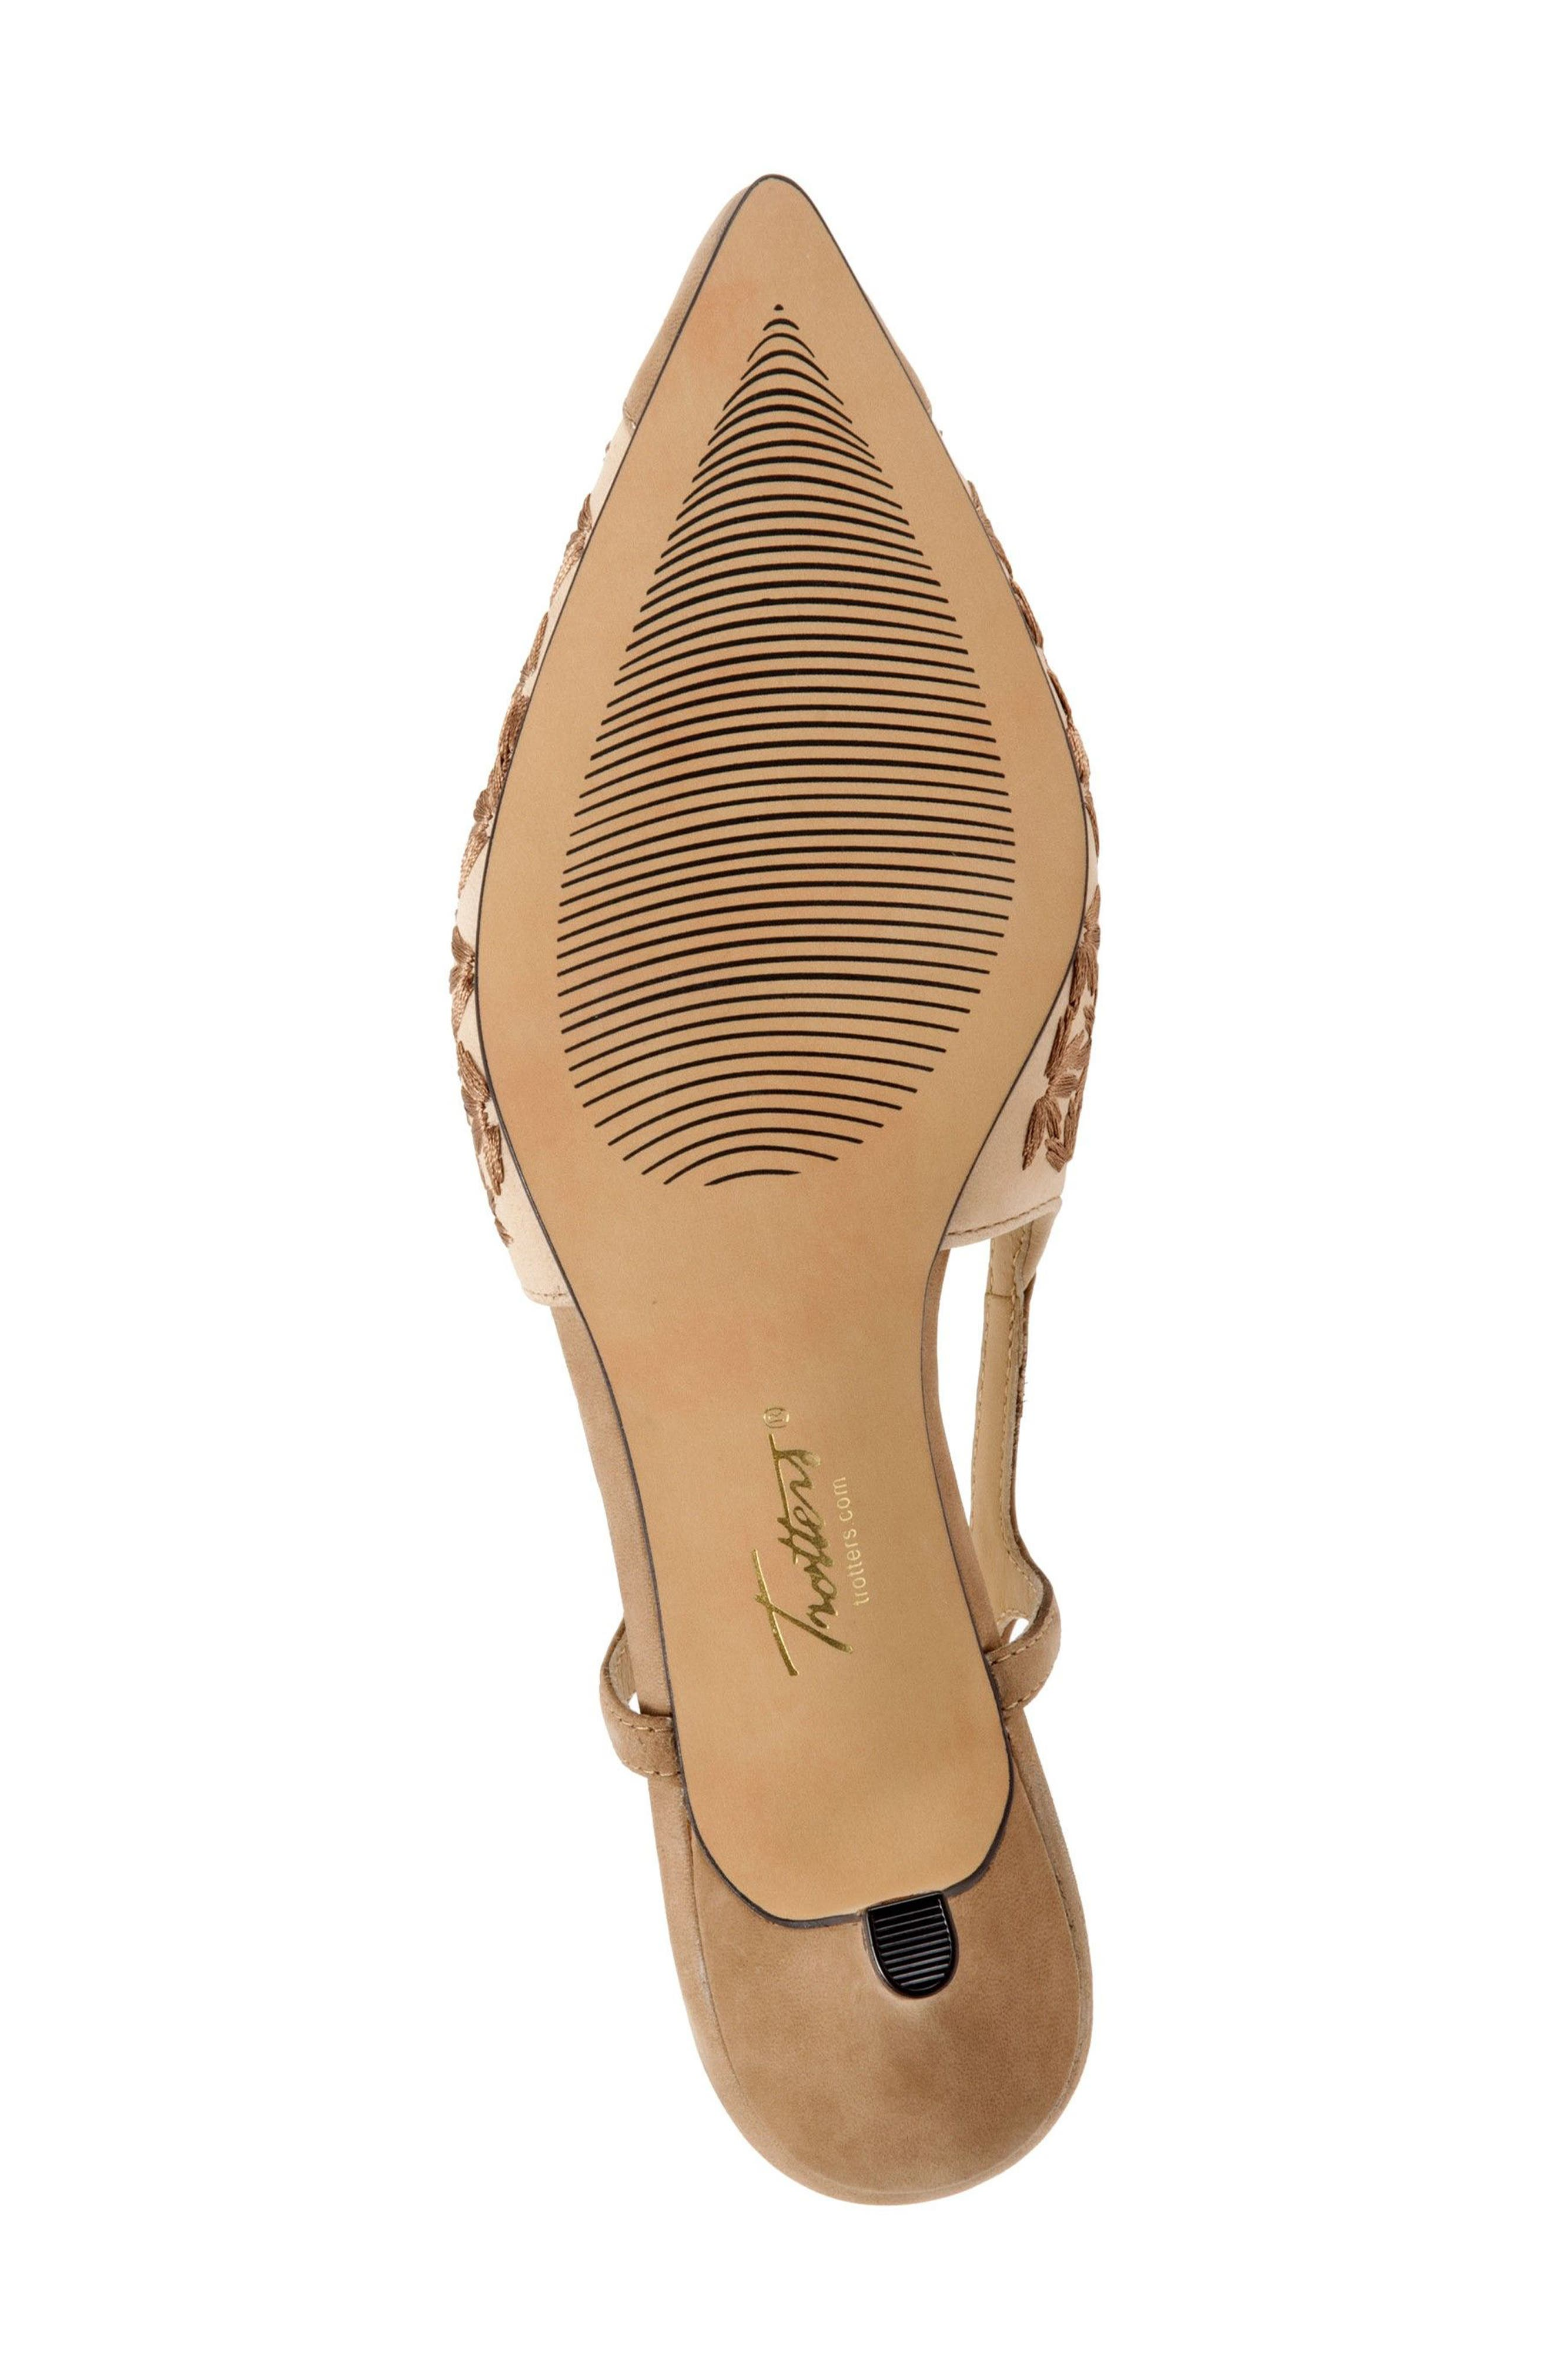 'Kimberly' Woven Leather Slingback Pump,                             Alternate thumbnail 4, color,                             Dark Tan/ Sand/ Bronze Leather